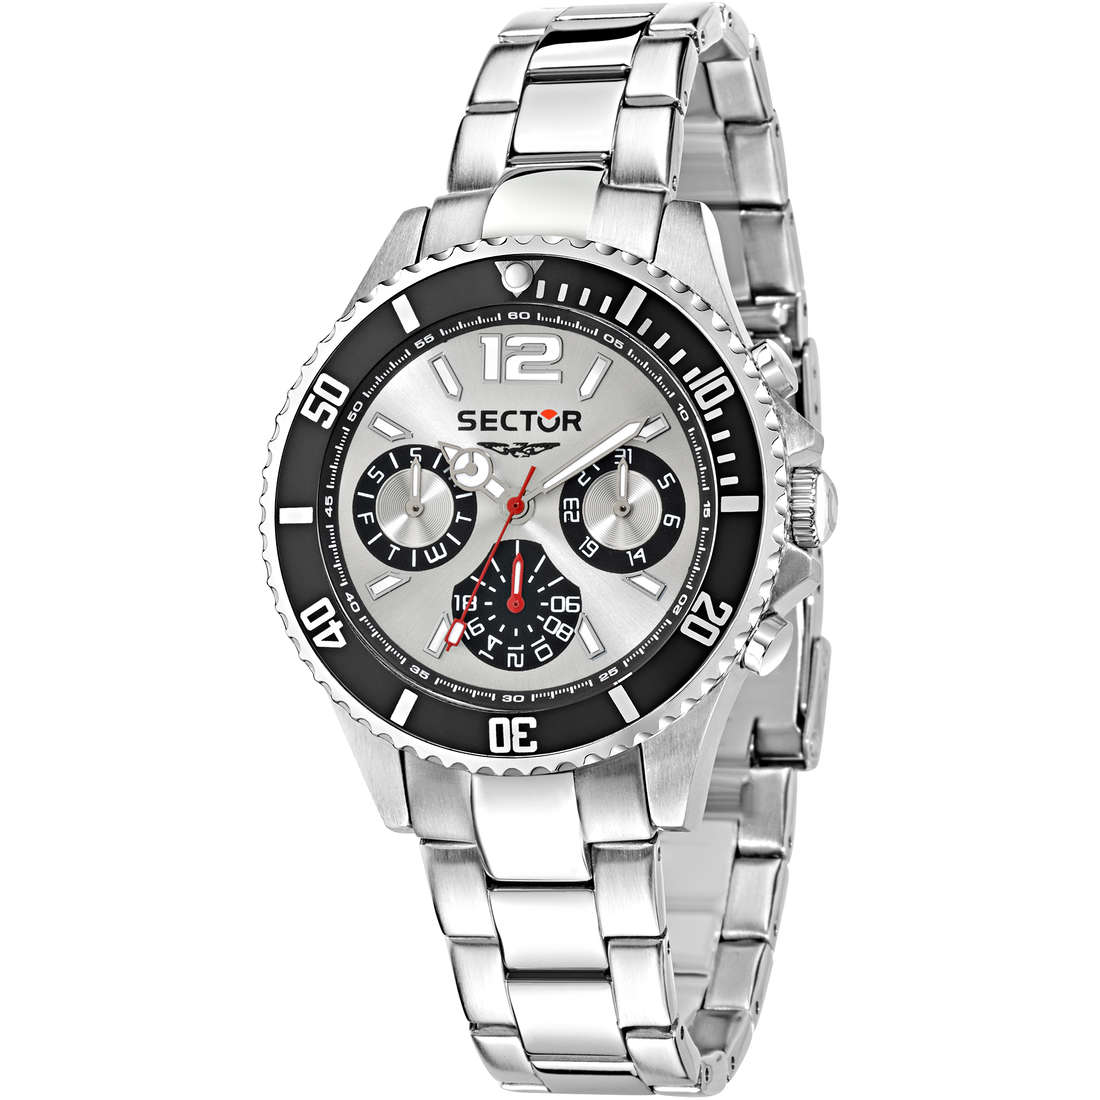 montre chronographe homme Sector 230 R3253161012